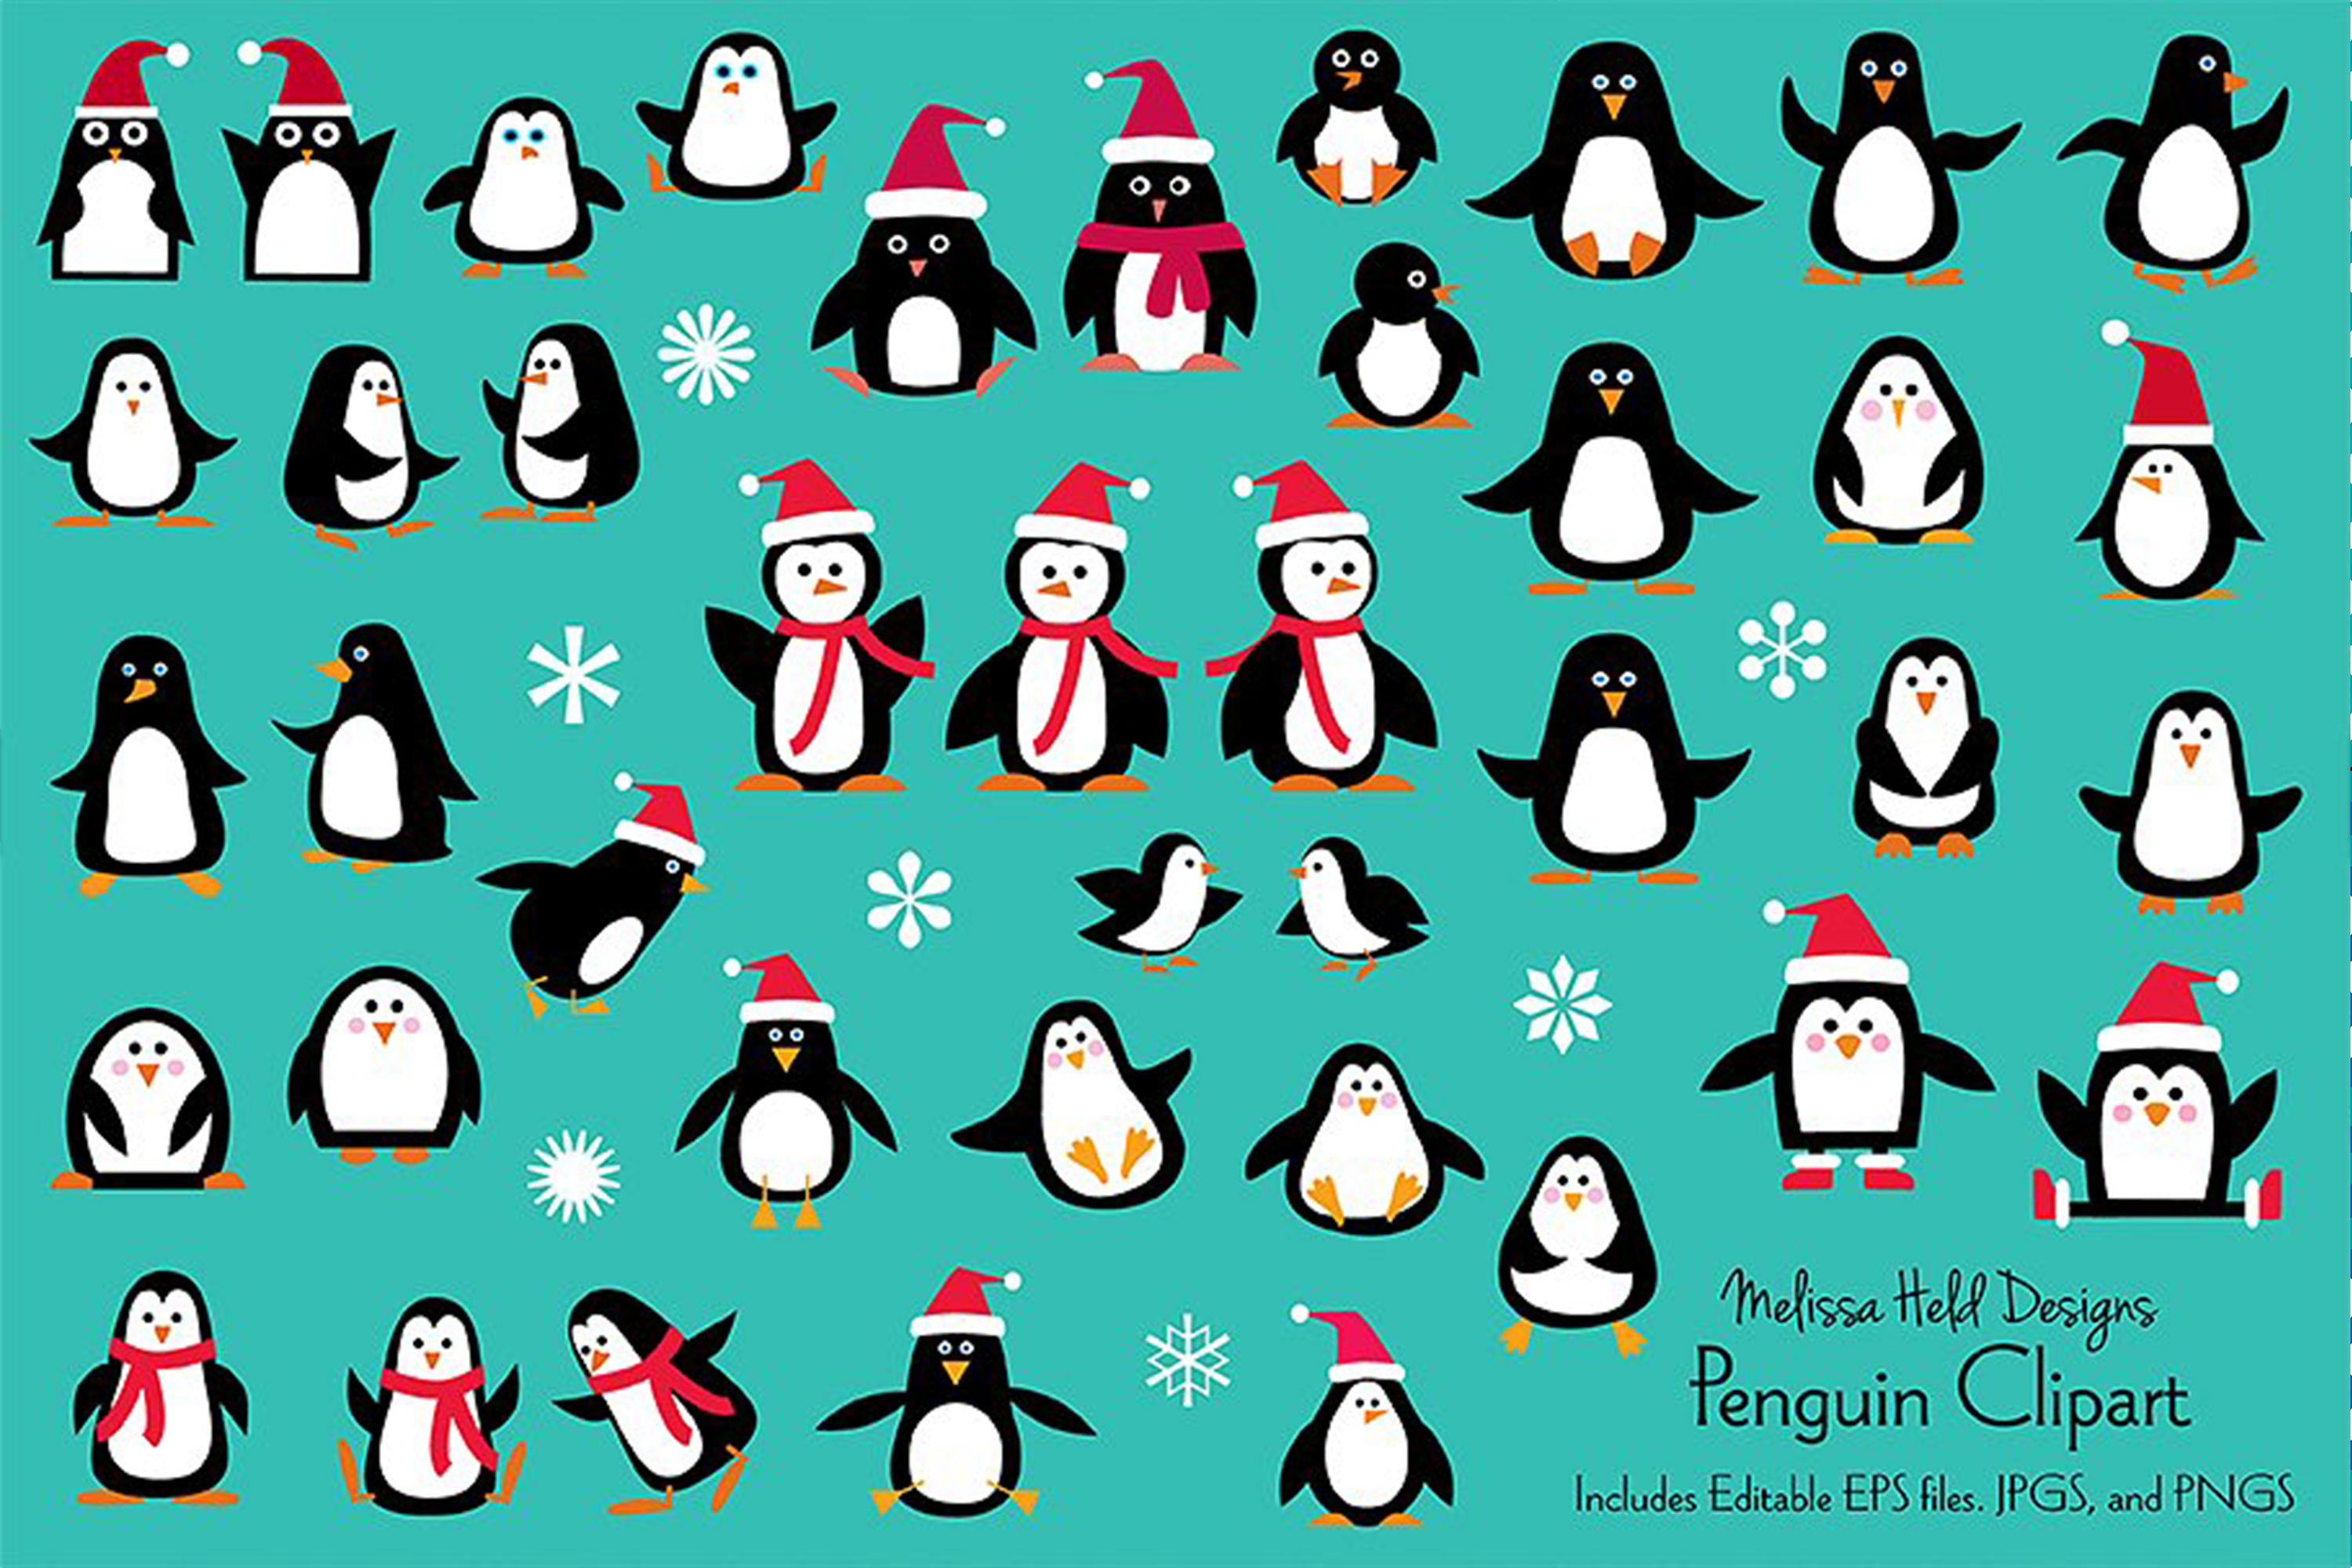 Penguin Clipart example image 1